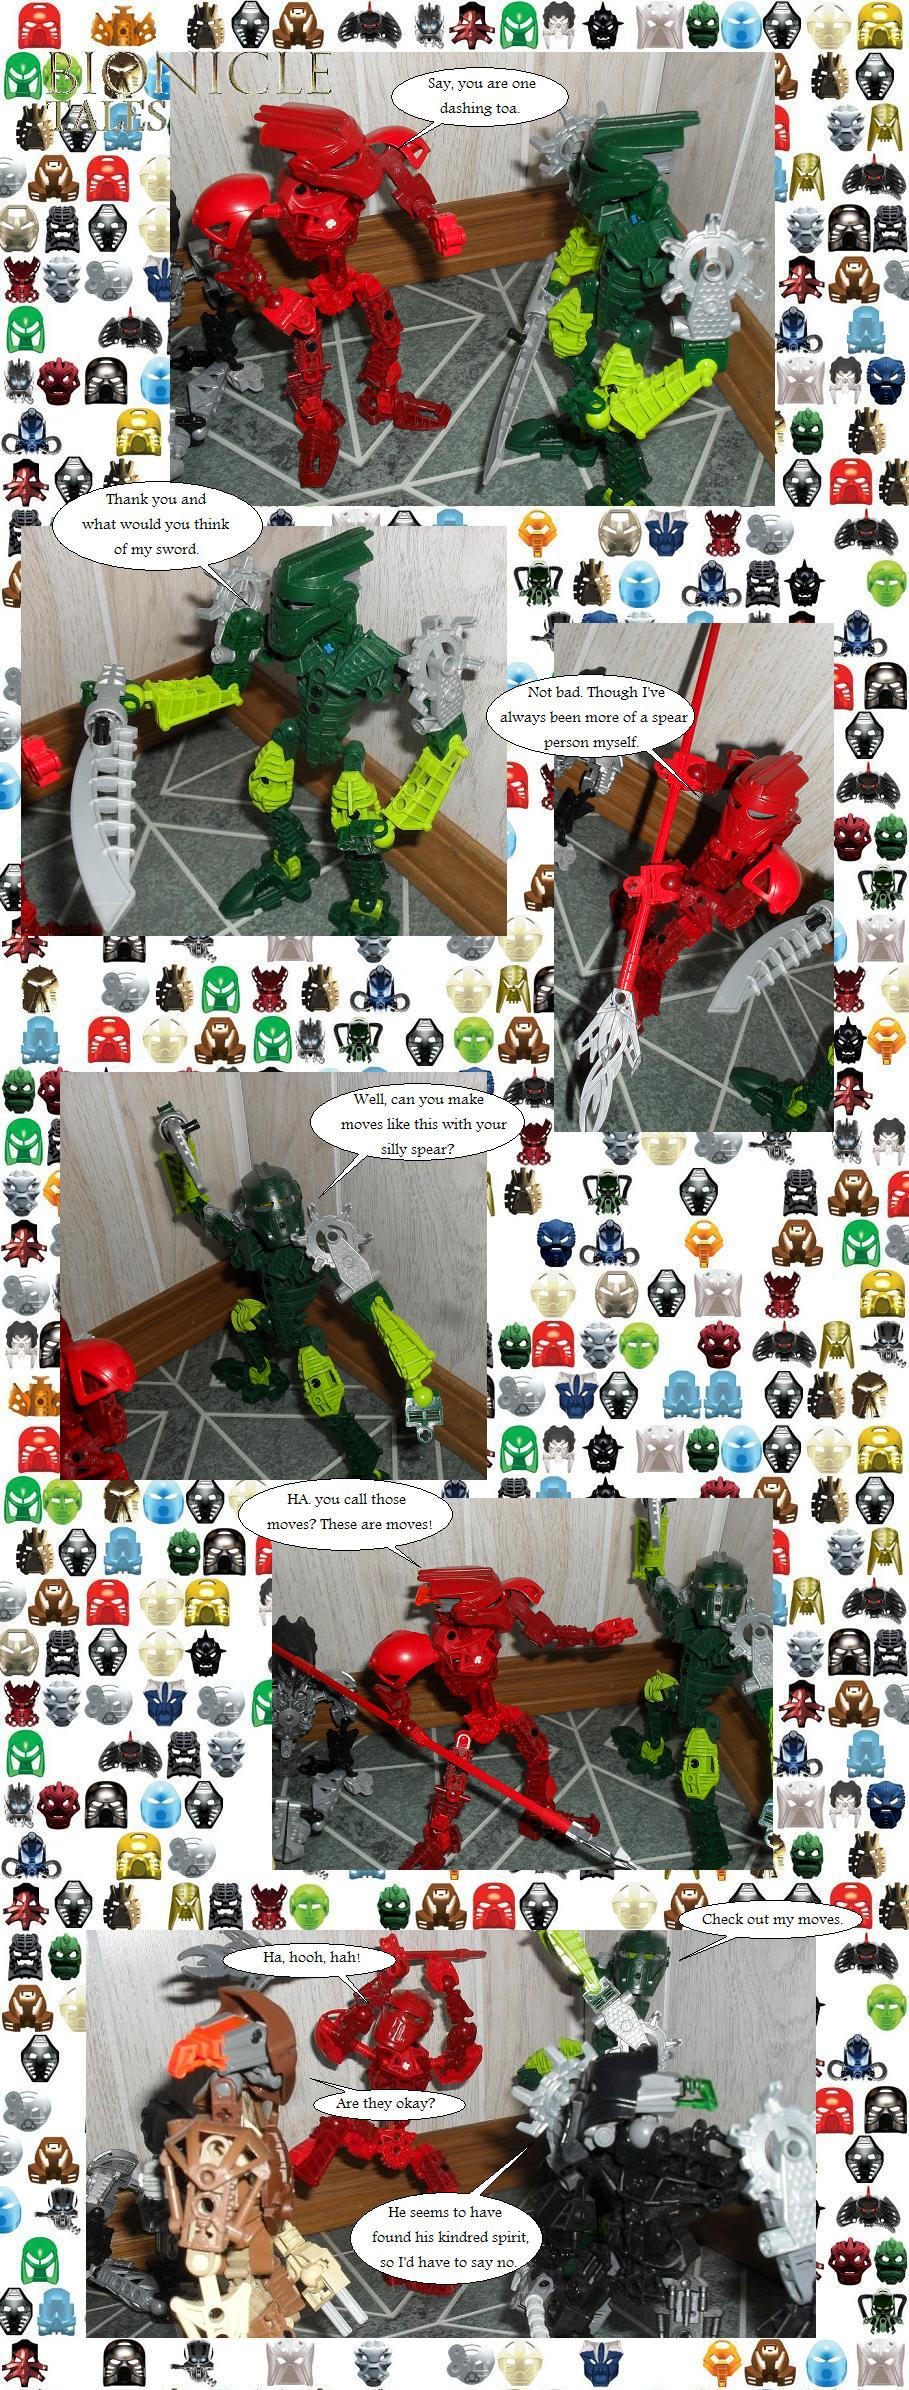 To Many Toa 1.72